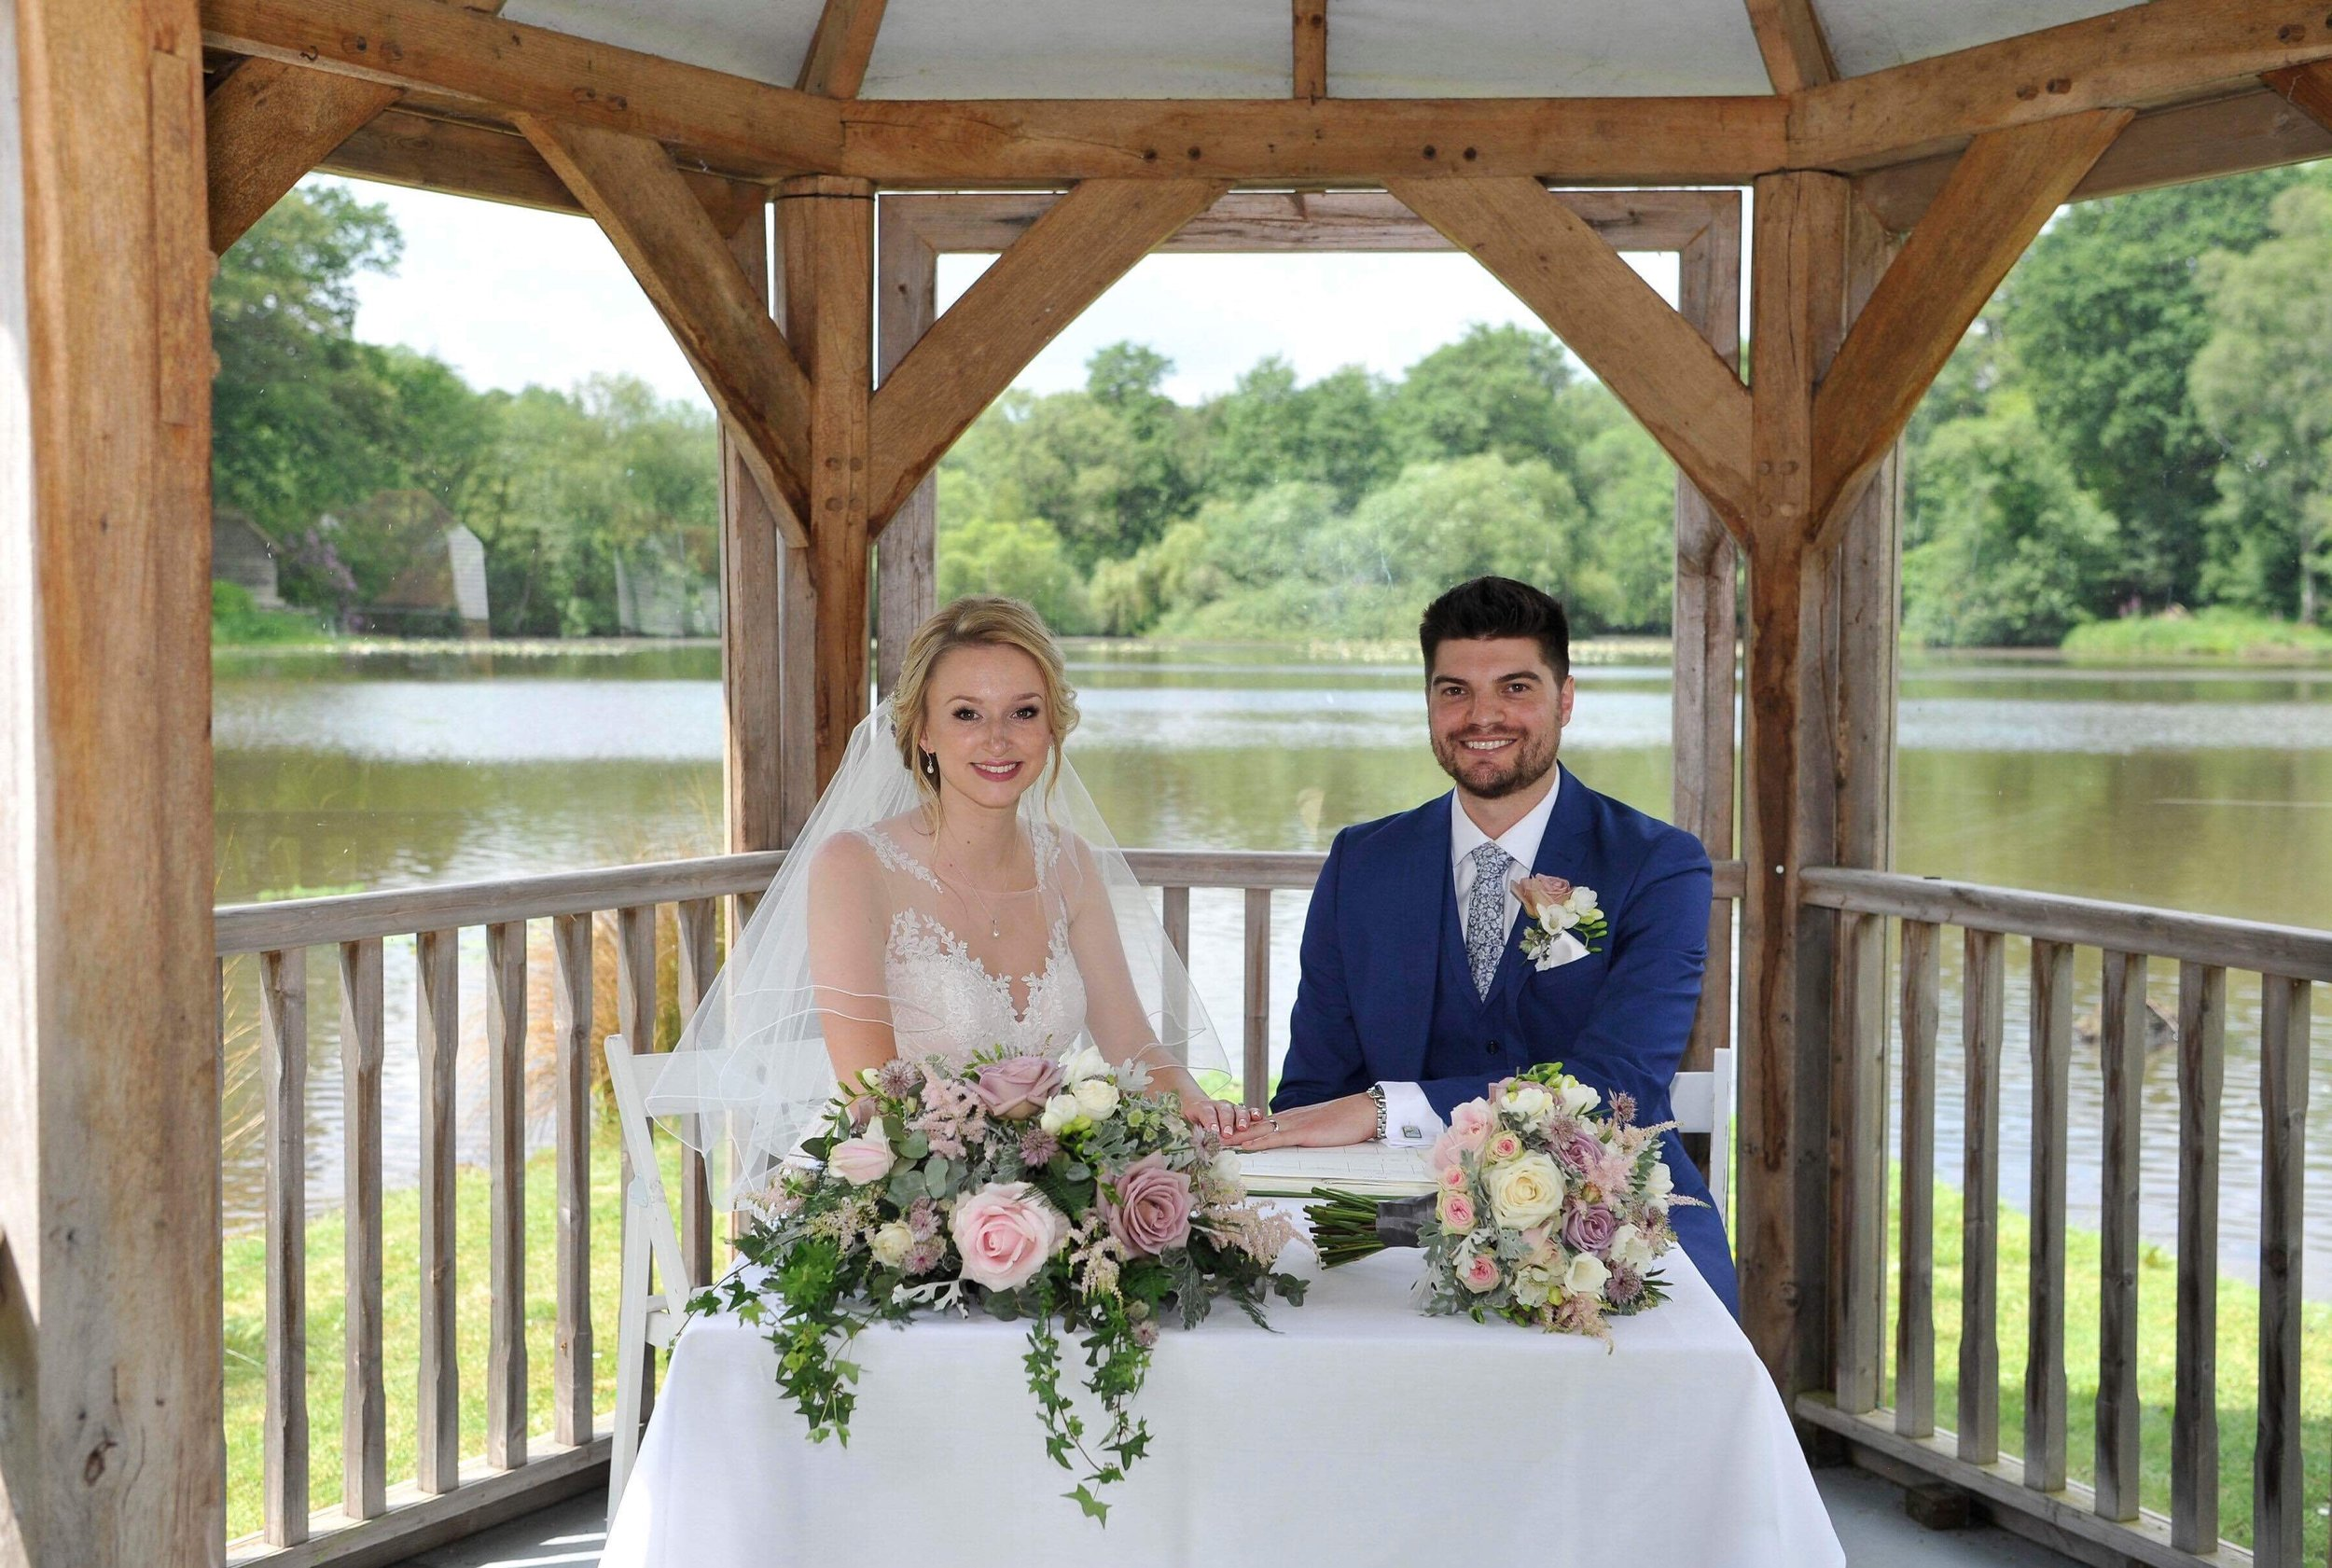 Bride and groom with wedding flowers in Sussex.